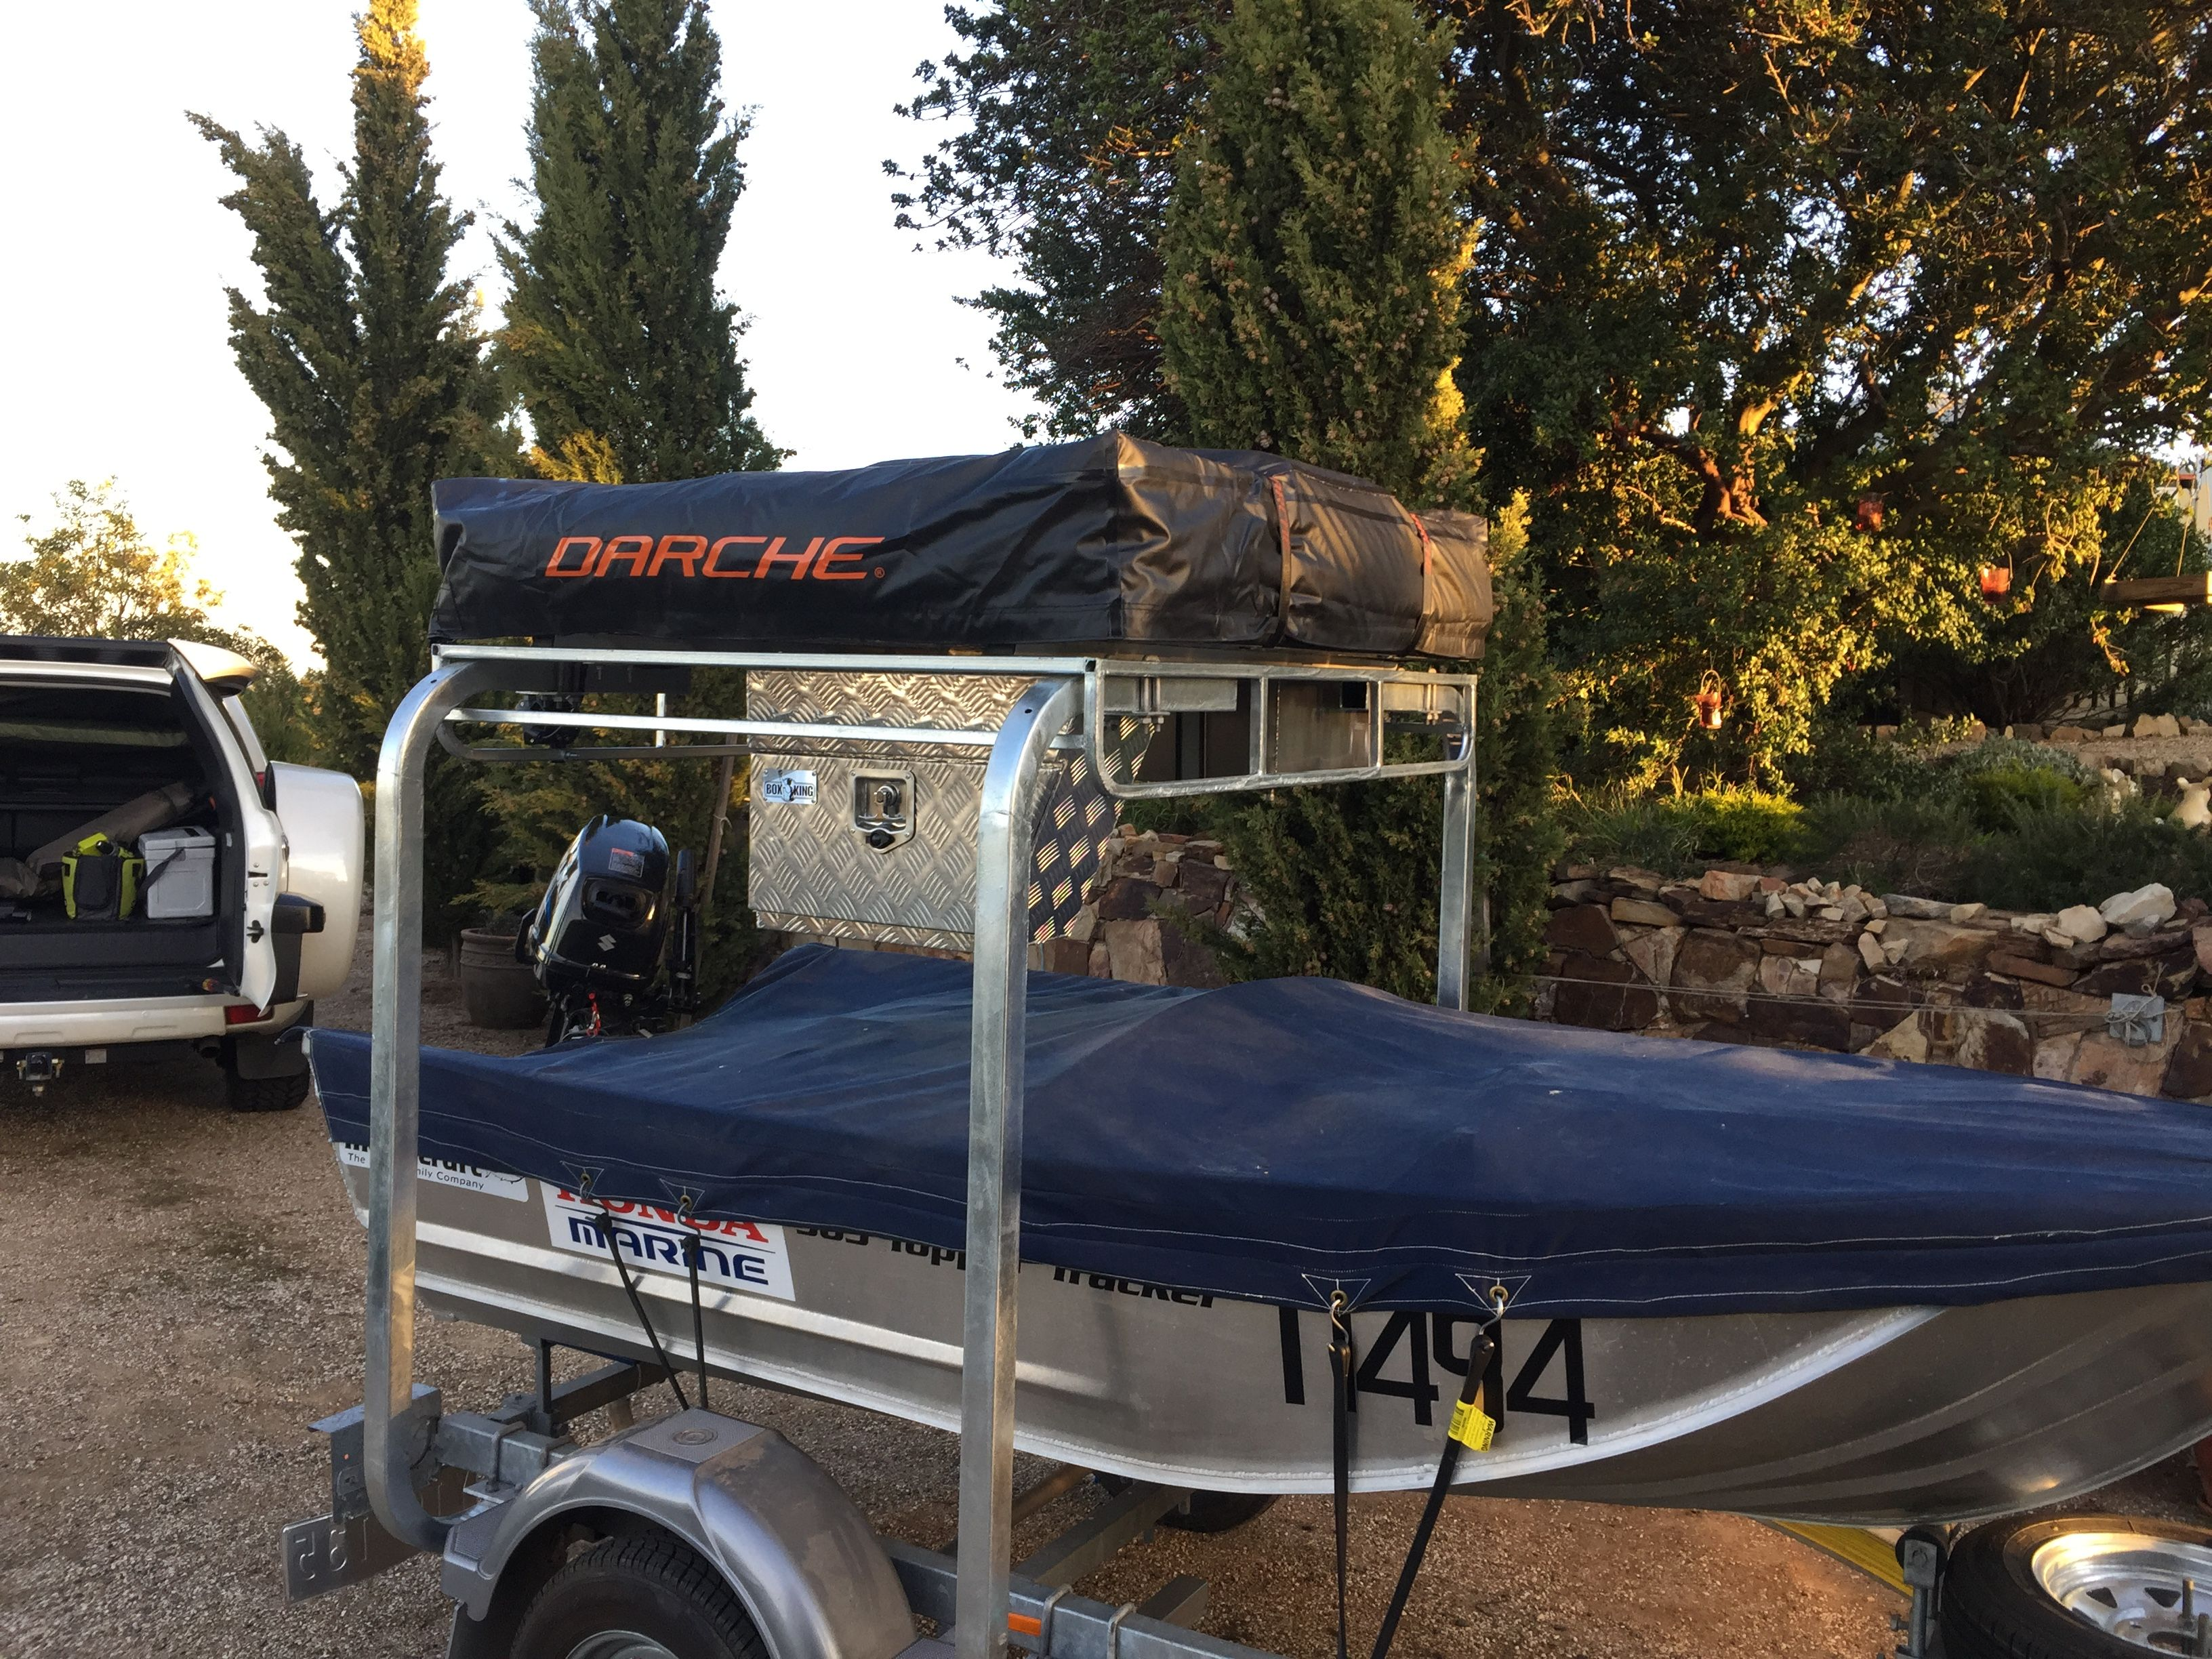 Boat Trailer With Roof Top Tent Roof Top Tent Boat Trailer Boat Trailers